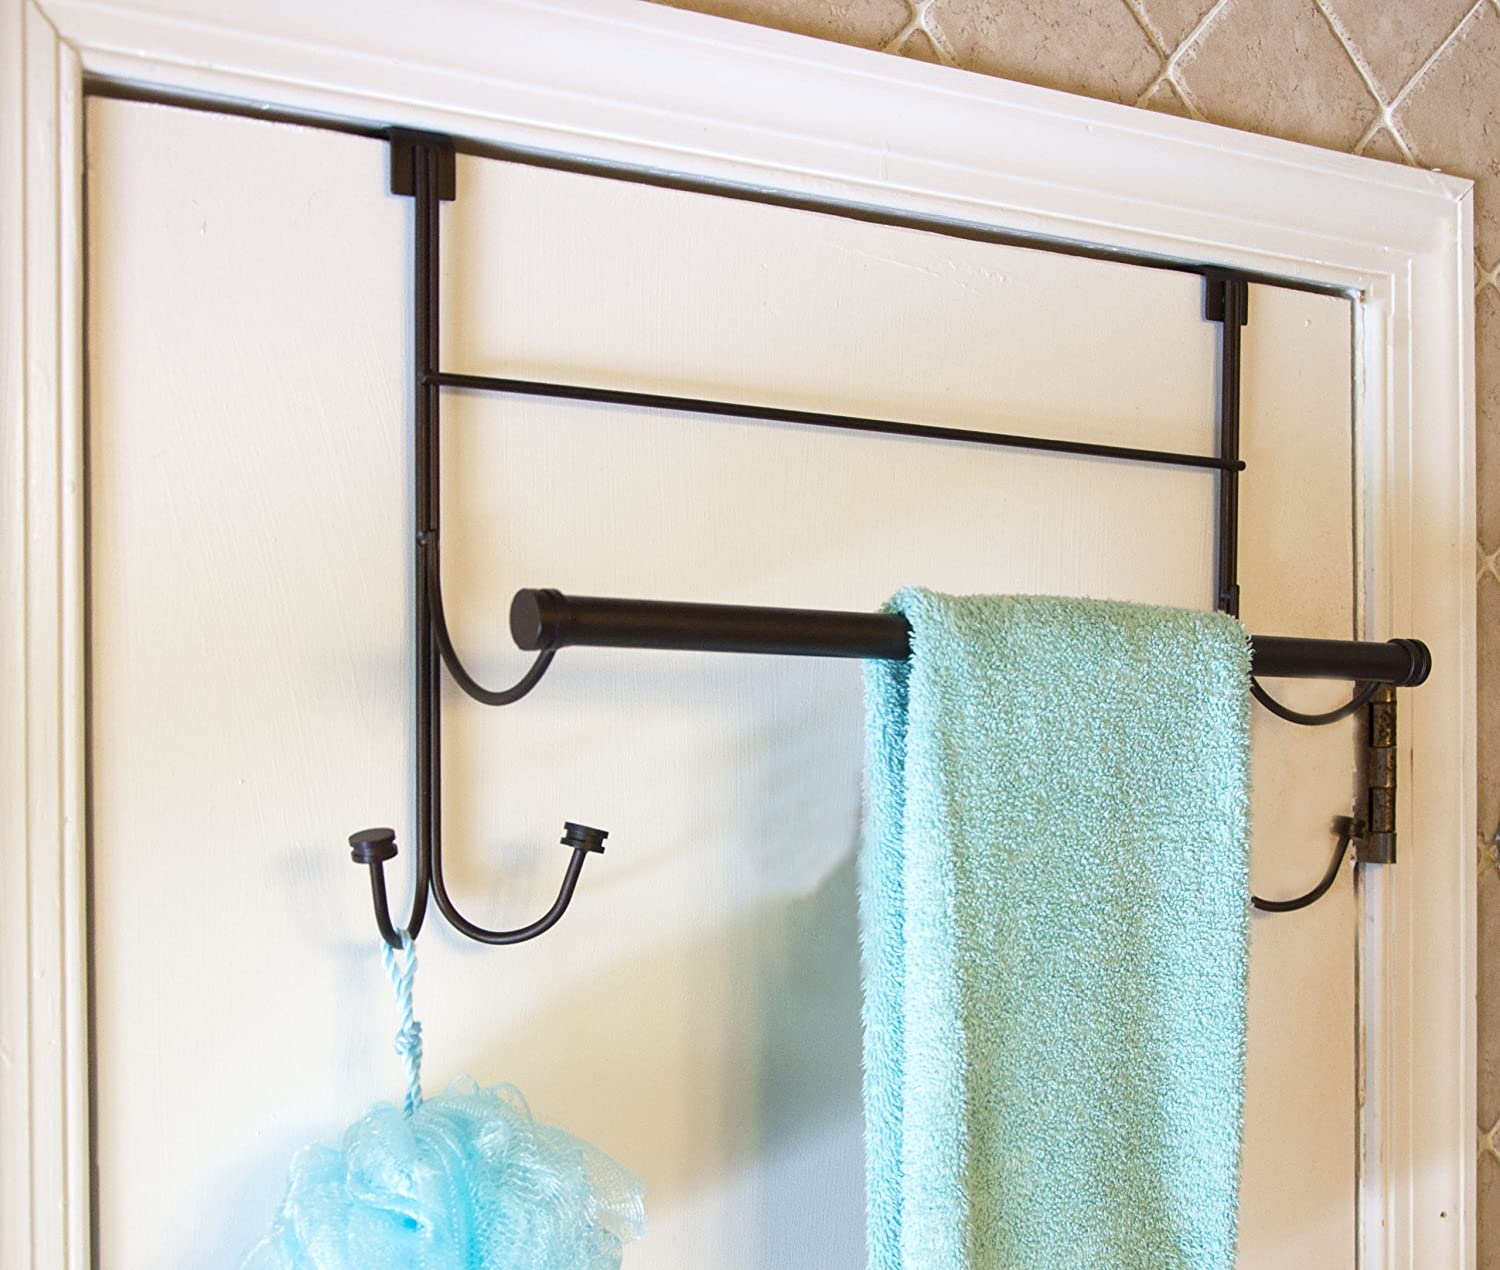 Amazon.com Bathsense Over the Door Towel Rack with 4 Hooks Oil Rubbed Bronze Home u0026 Kitchen & Amazon.com: Bathsense Over the Door Towel Rack with 4 Hooks Oil ...